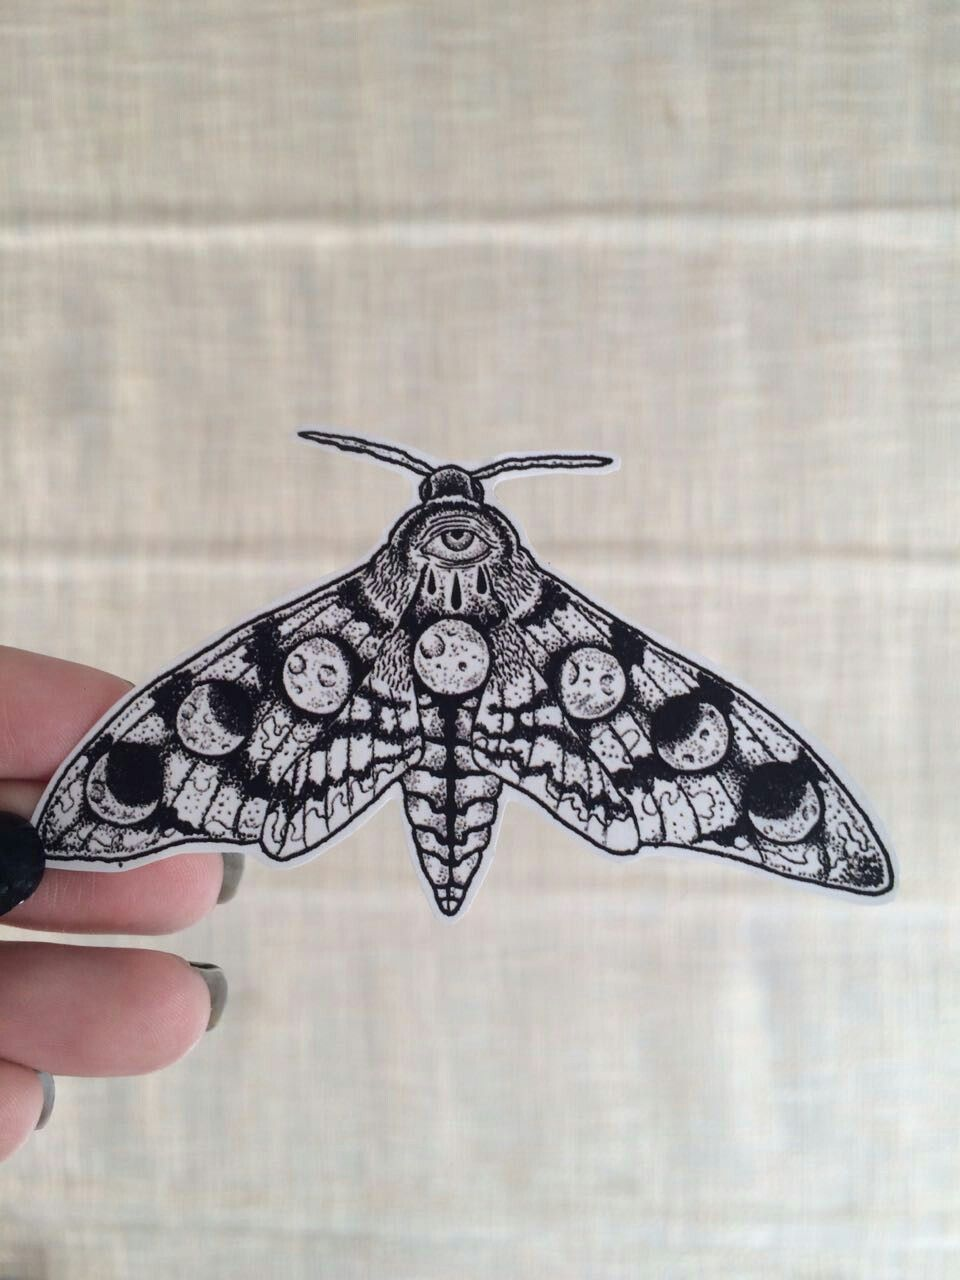 Awesome combinations of a night butterfly and moon phases awesome combinations of a night butterfly and moon phases darkness biocorpaavc Choice Image